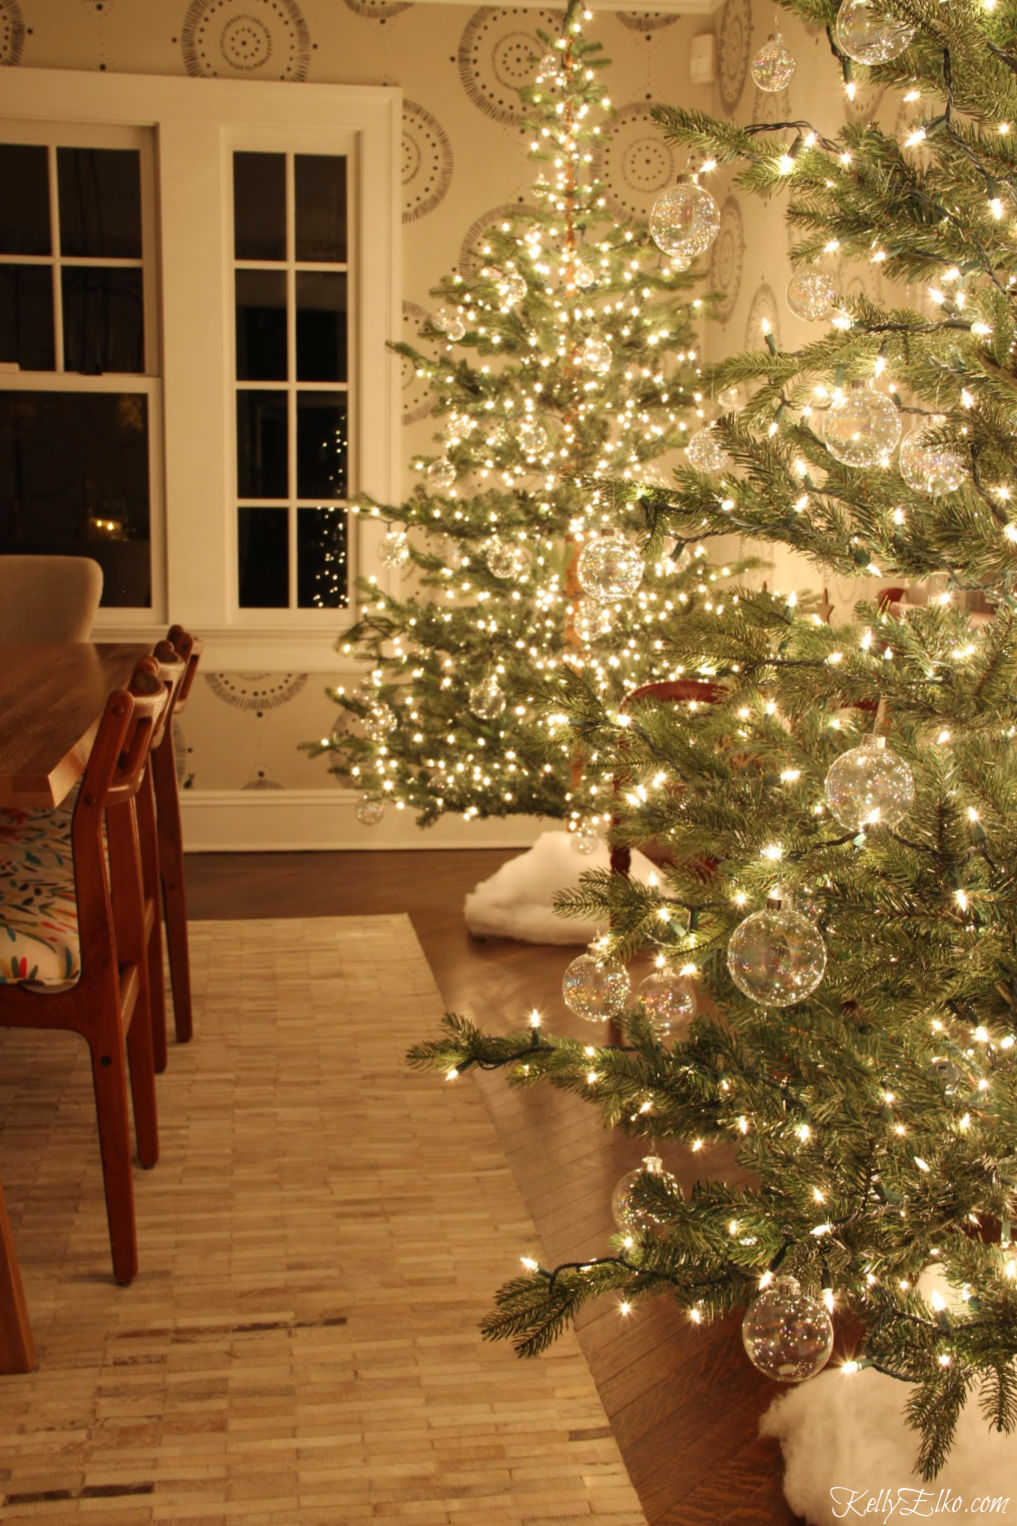 Glowing Christmas Tour at Night - love the pair of glowing sparse trees with clear glass ornaments kellyelko.com #christmasdecor #christmastrees #sparsechristmastrees #christmaslights #christmasdiningroom #christmasornaments #clearornaments #diychristmas #christmascrafts #kellyelko #farmhousechristmas #fixerupperstyle